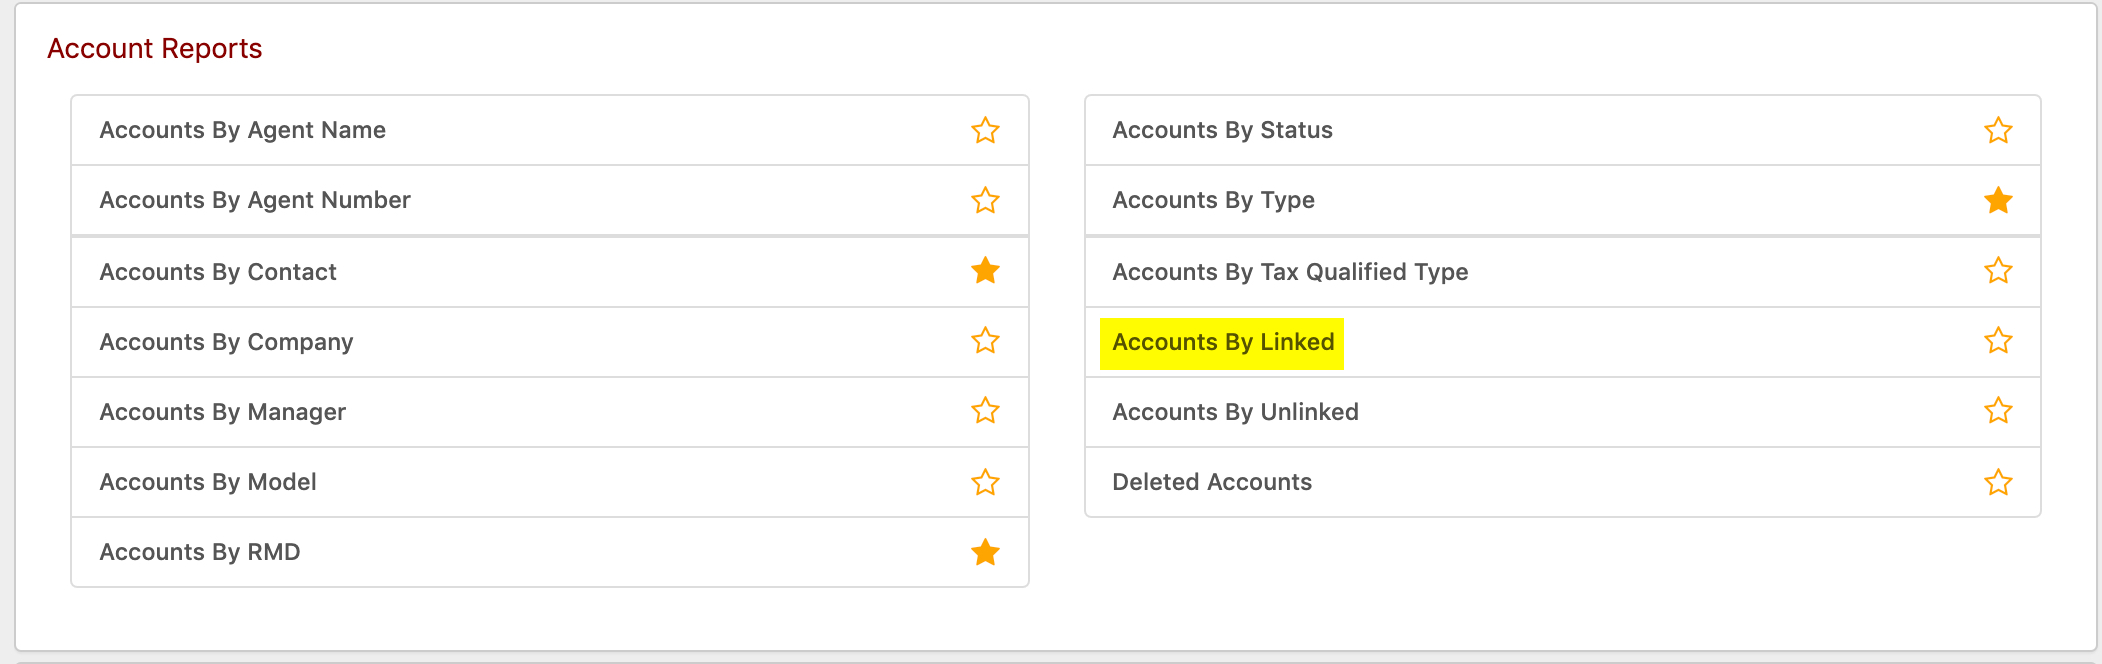 accounts_by_linked_report.jpg